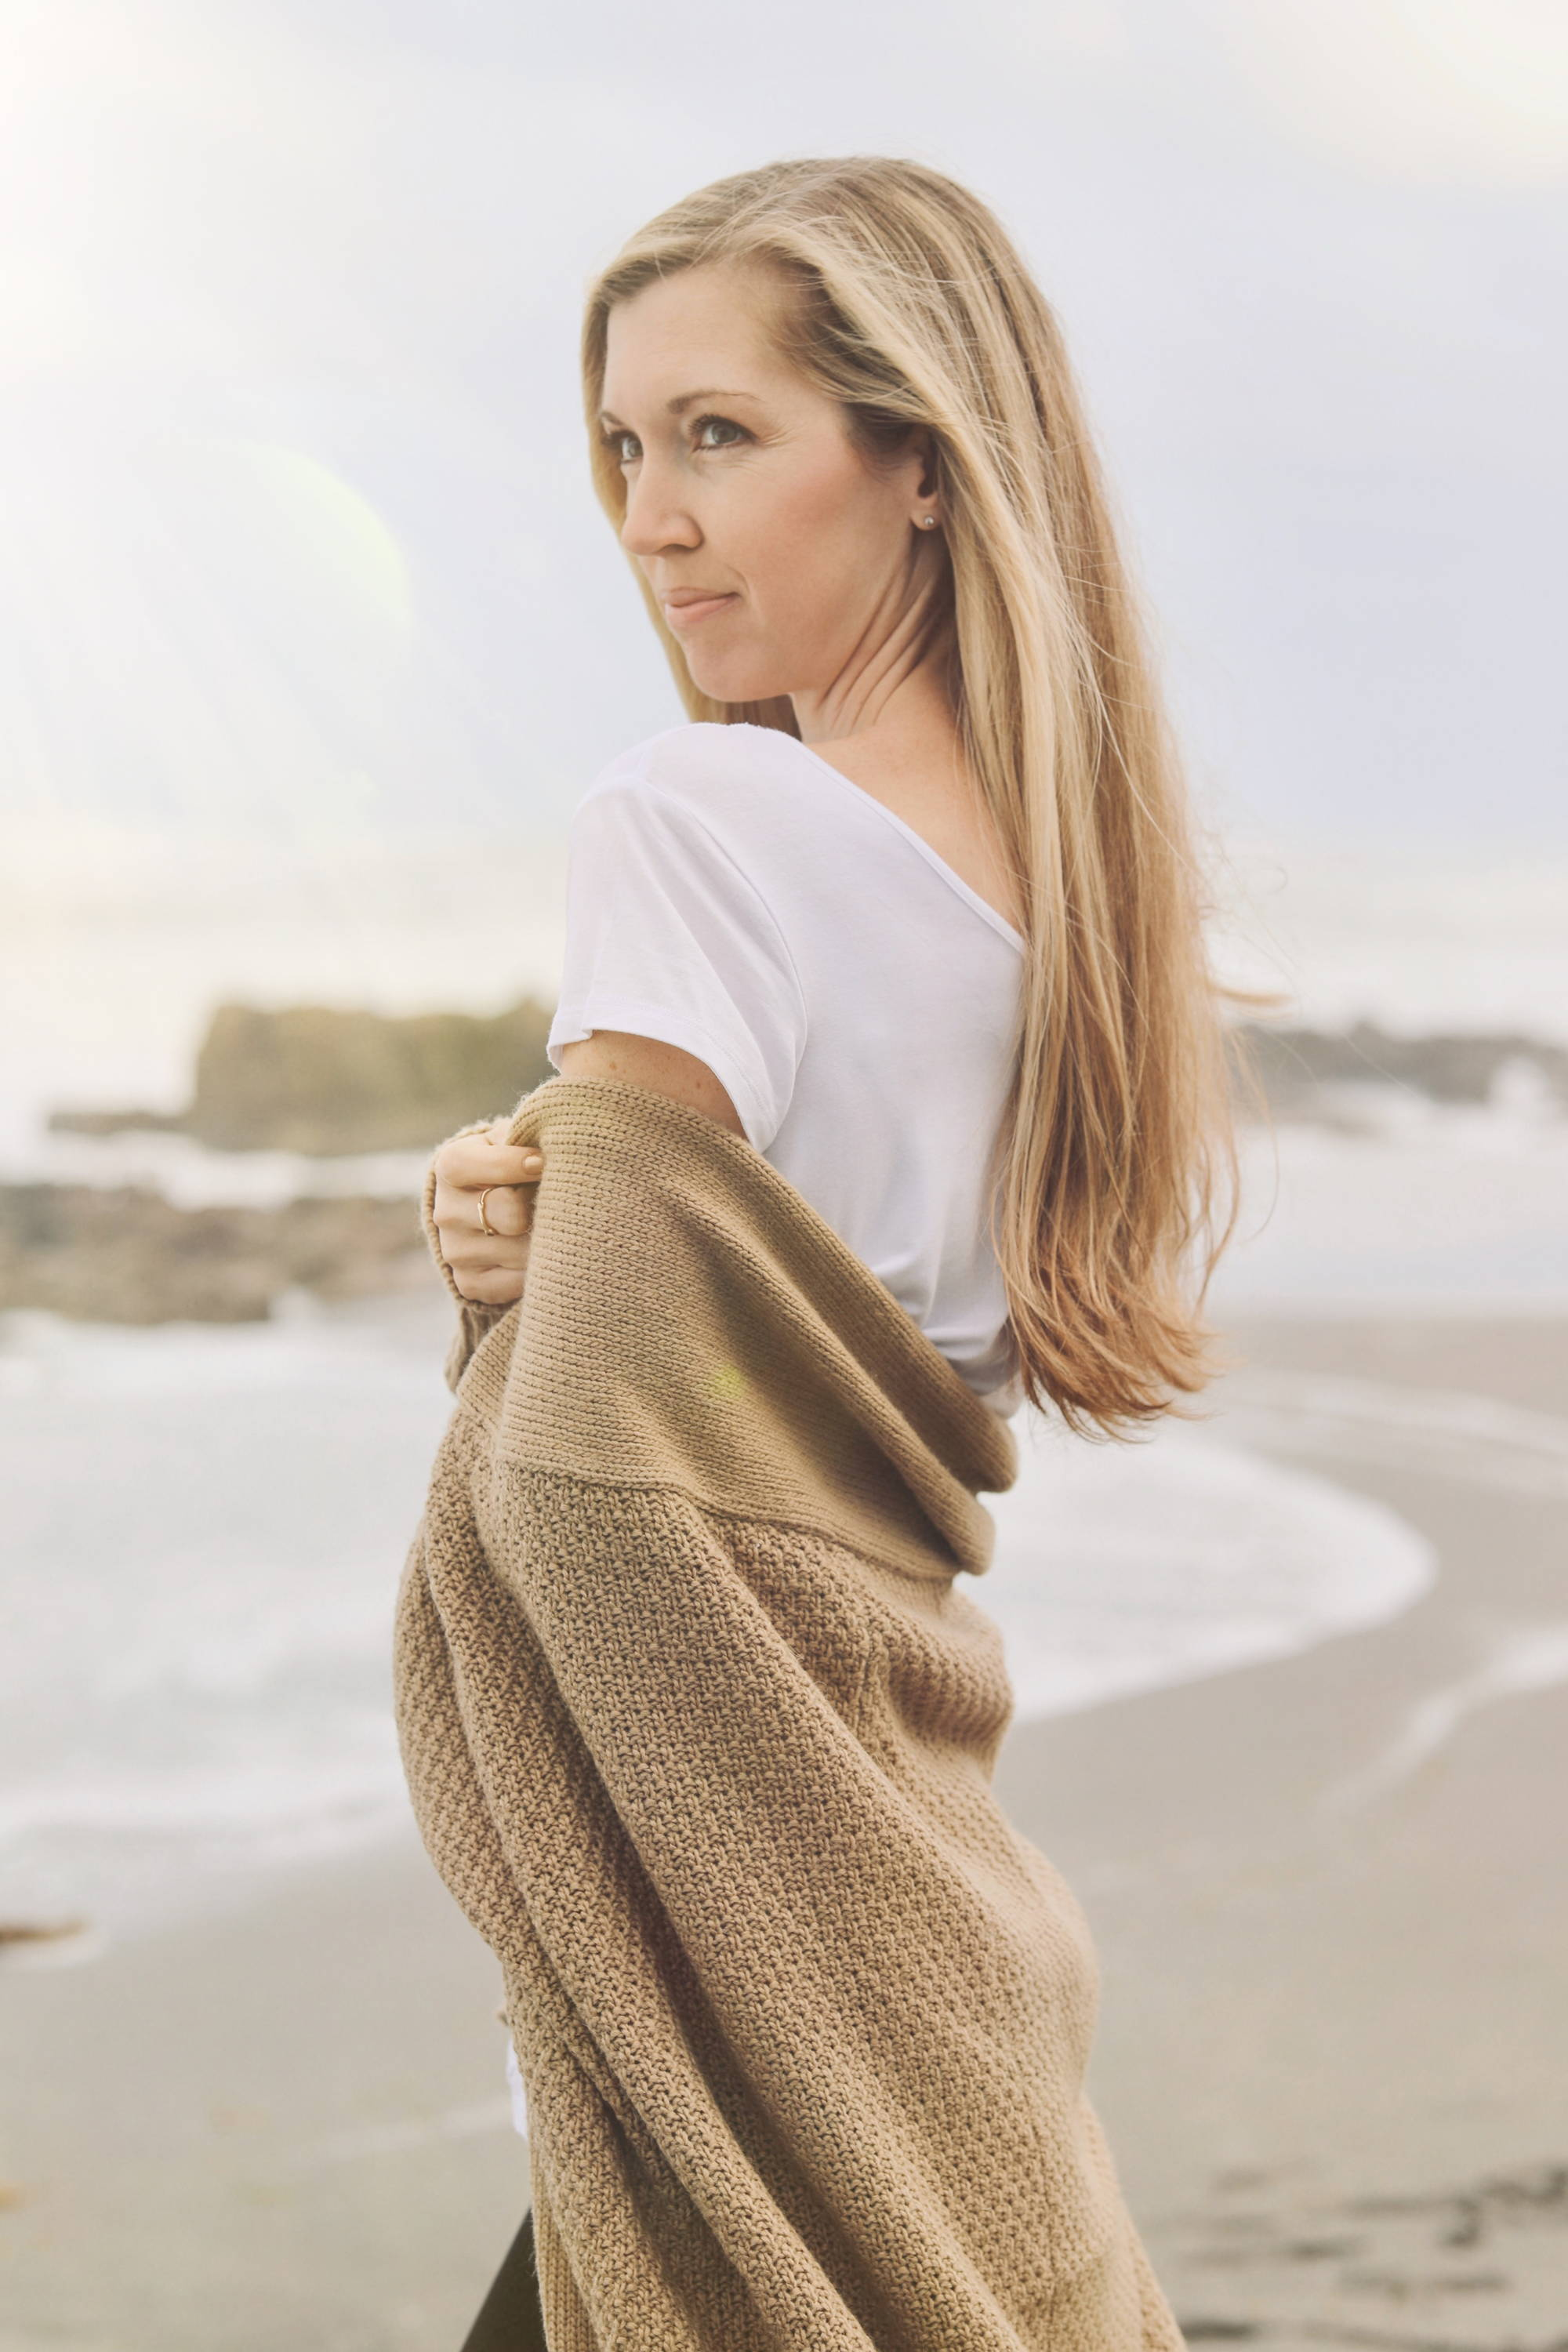 Model wearing the Zeville Cardigan on camel on the beach